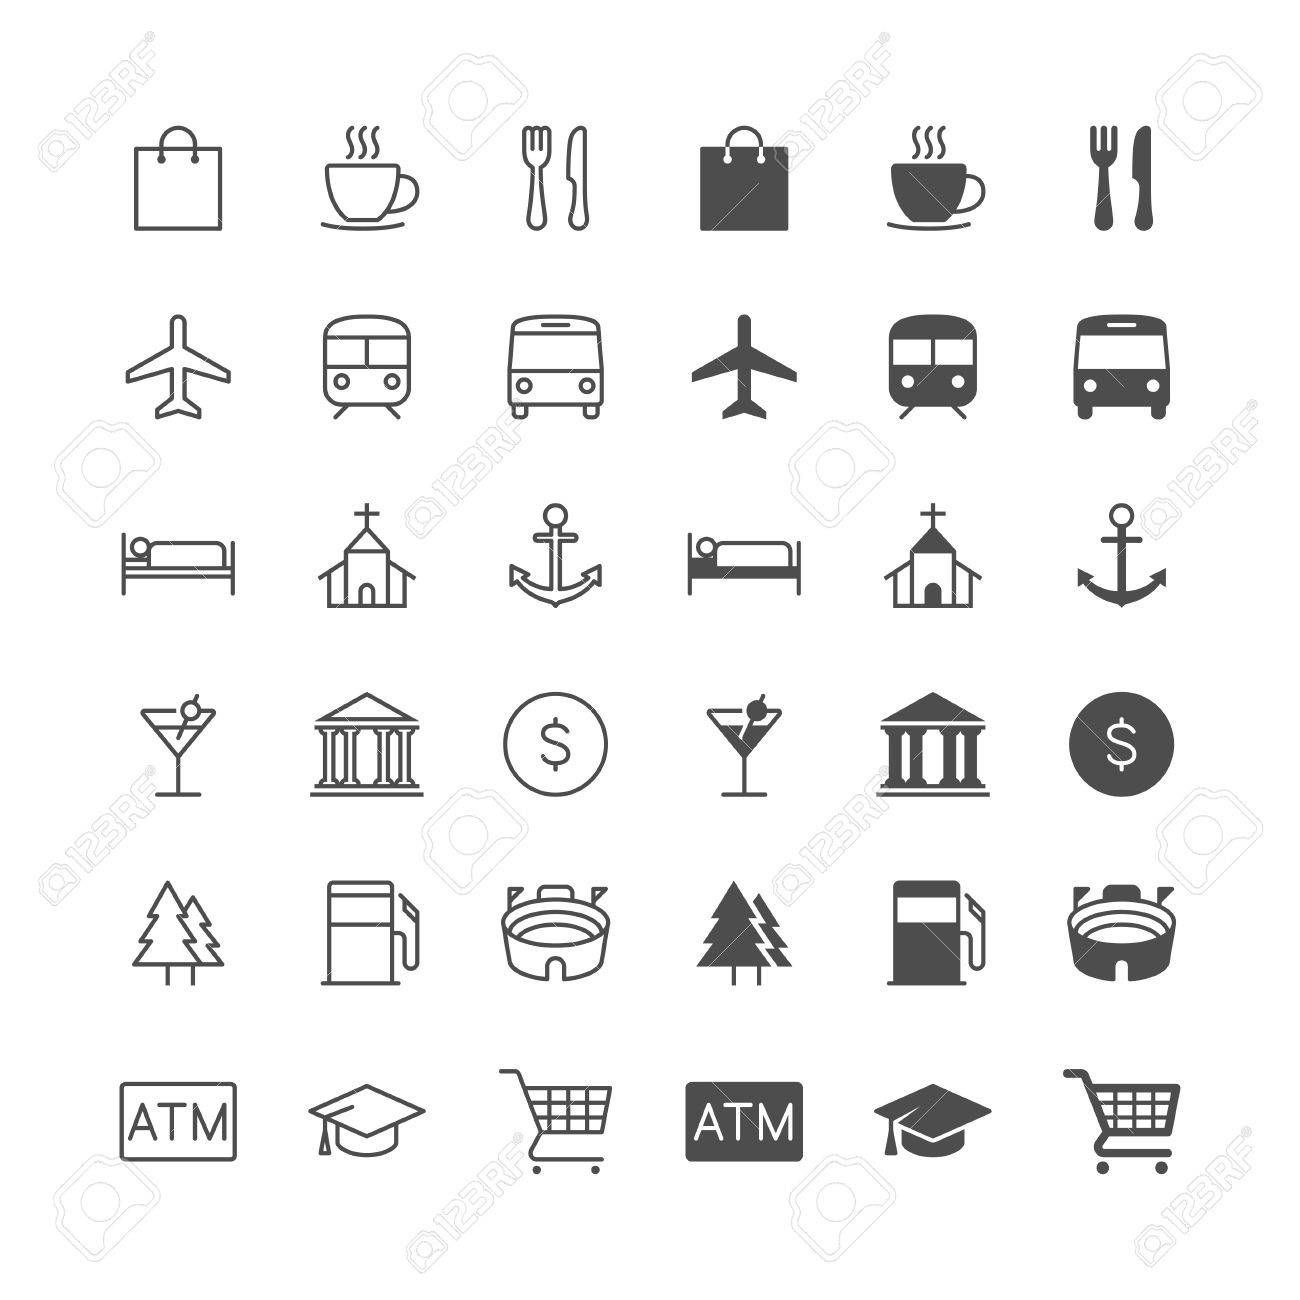 Map and location icons, included normal and enable state. - 59175909